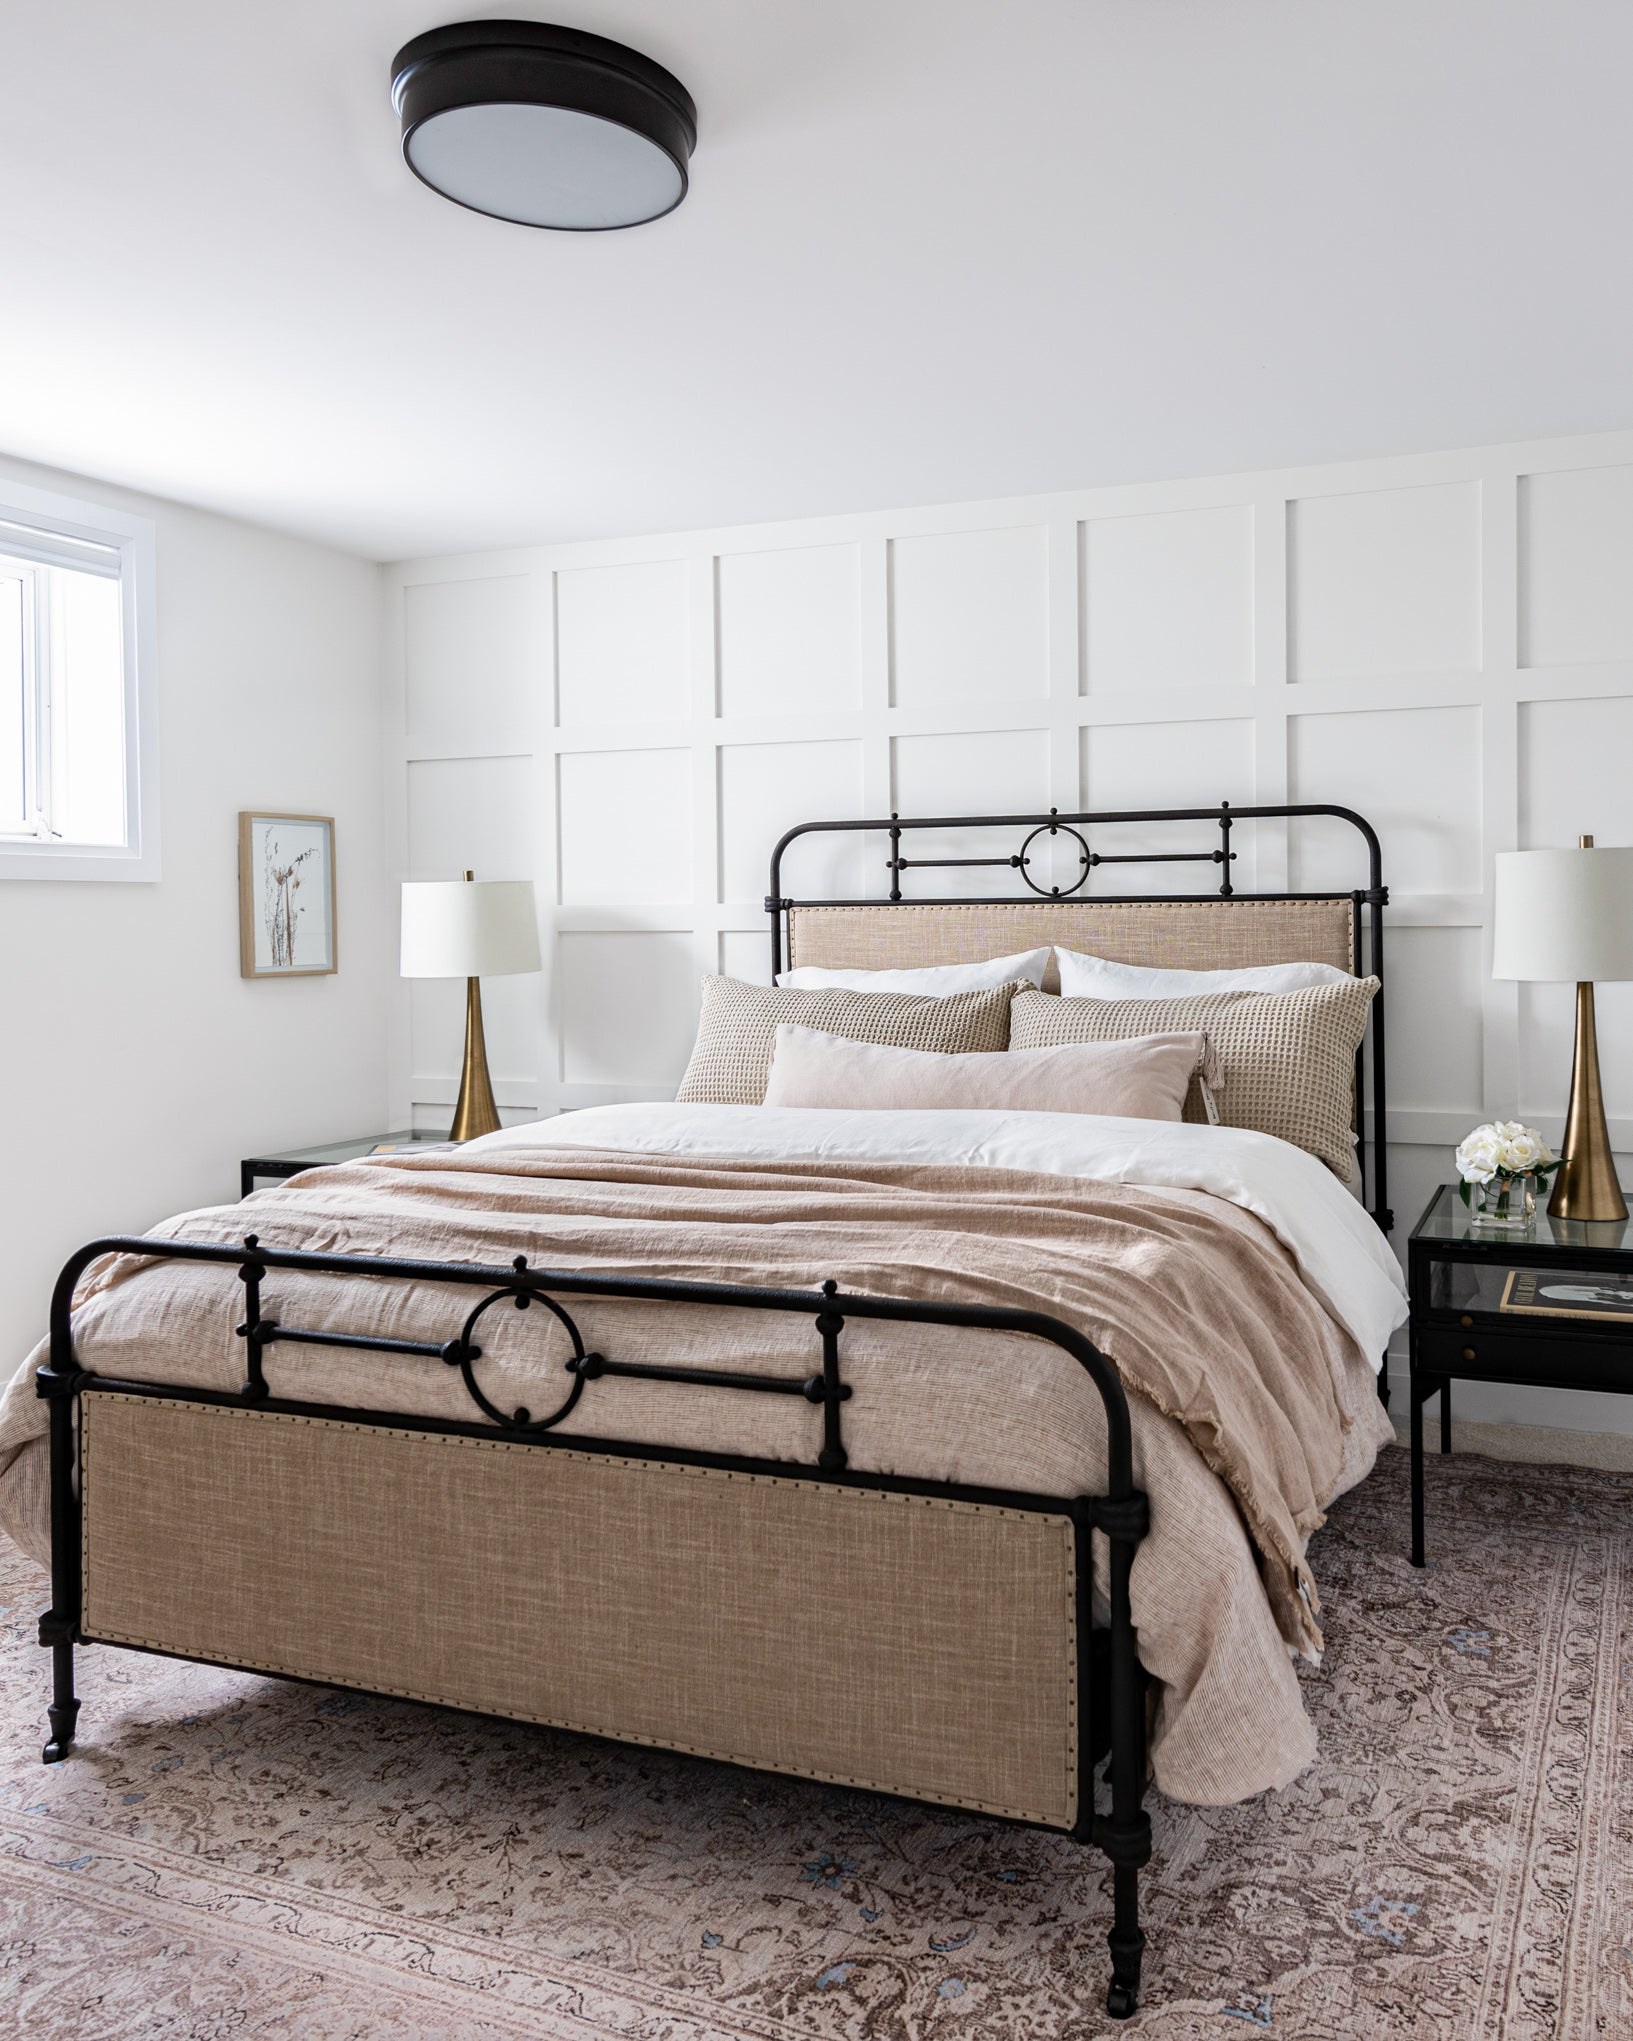 Blush and white guest bedroom.